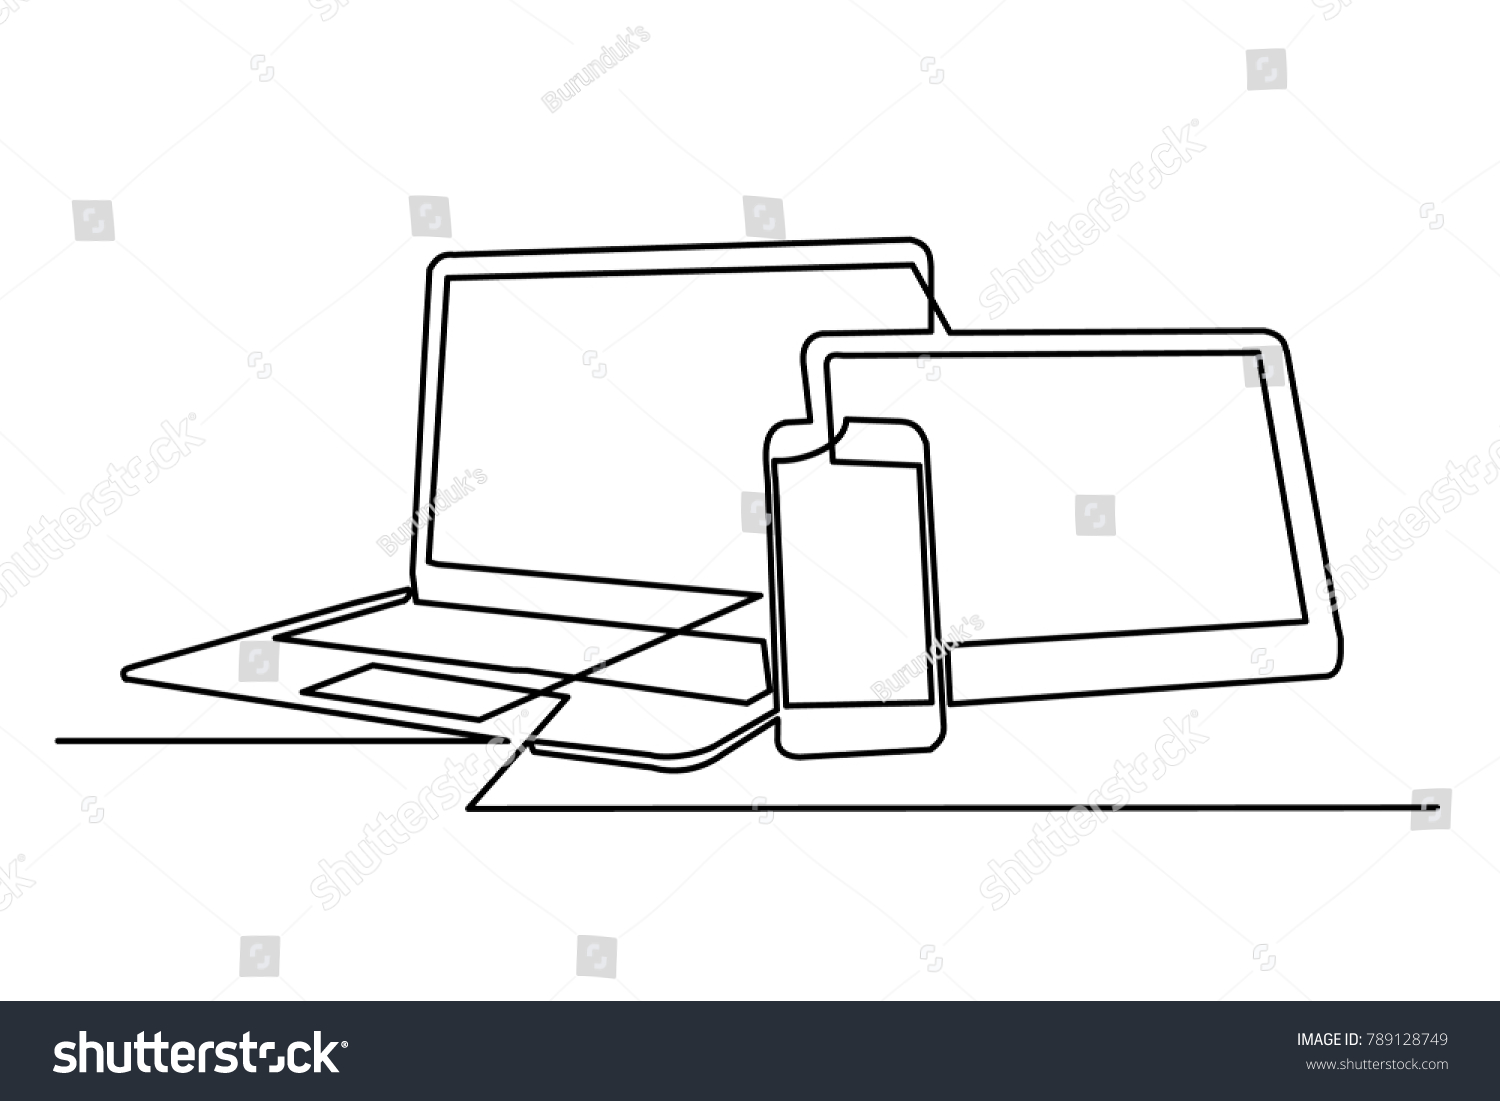 Drawing Lines With Tablet : Continuous drawing laptop computer tablet mobile stock vector